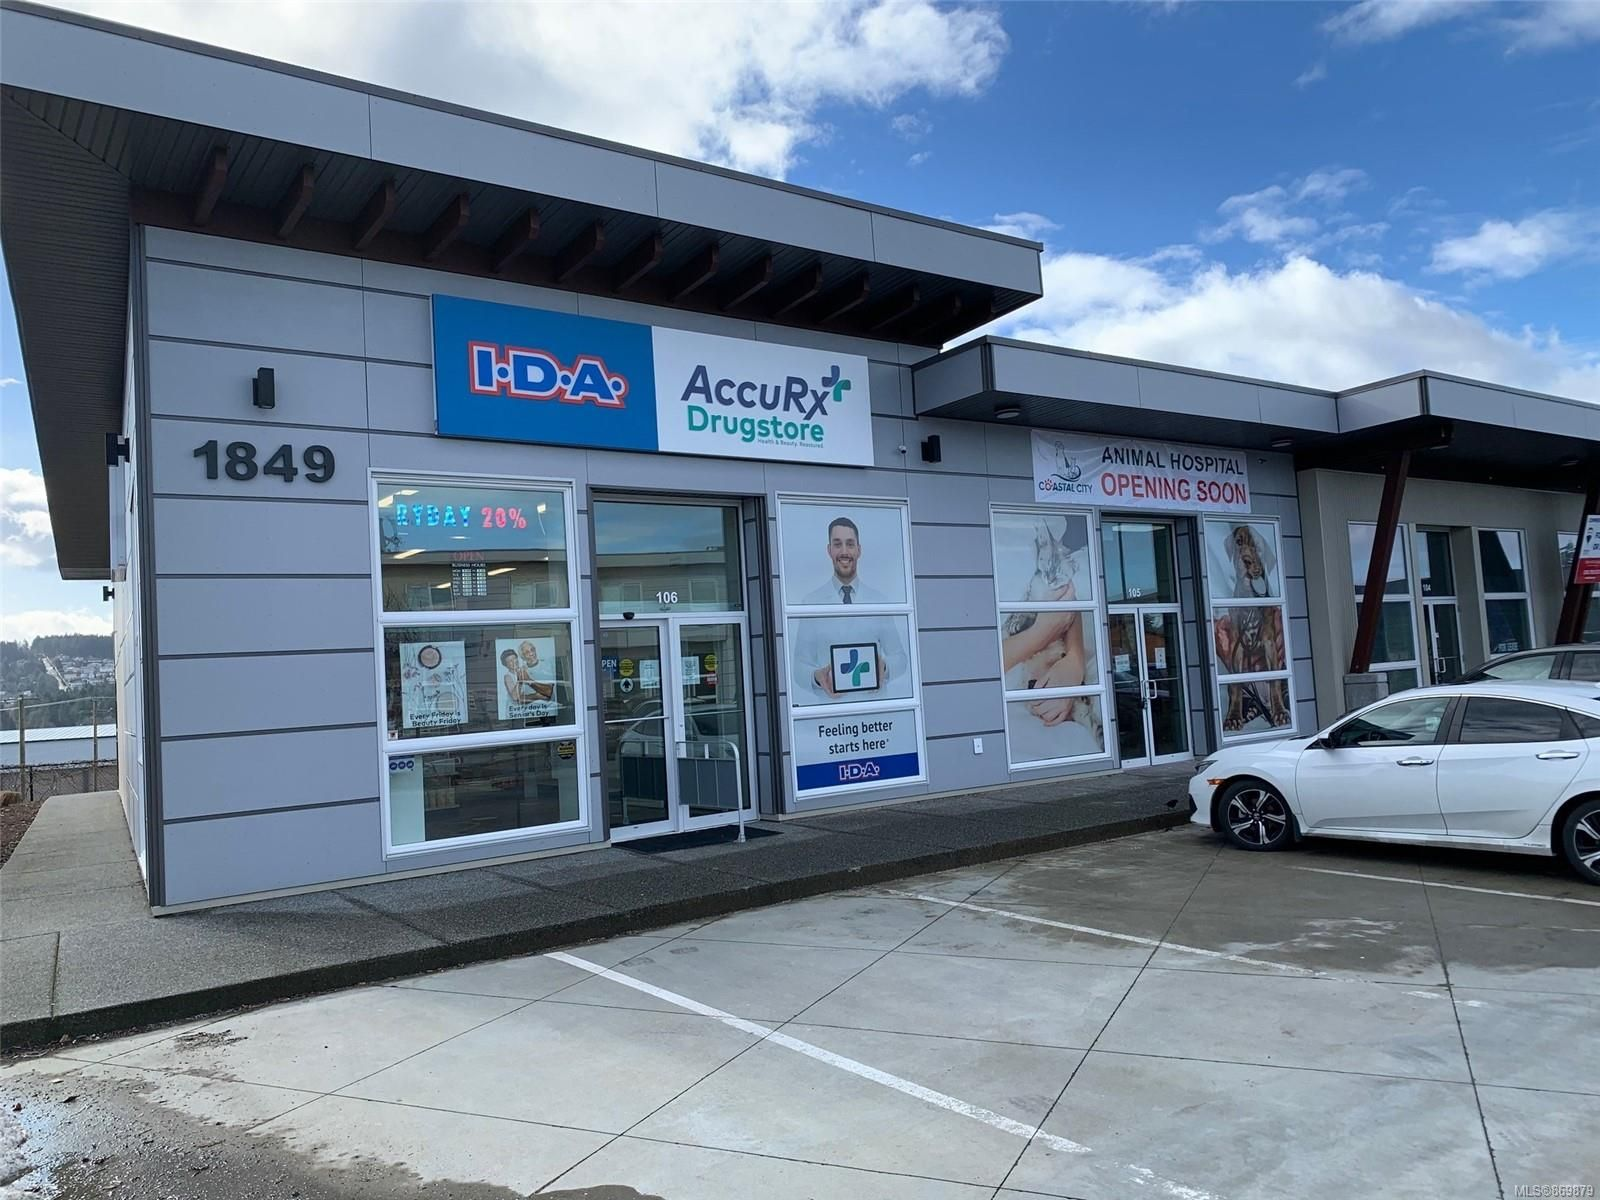 Main Photo: 103 1849 Dufferin Cres in : Na Central Nanaimo Mixed Use for lease (Nanaimo)  : MLS®# 869879